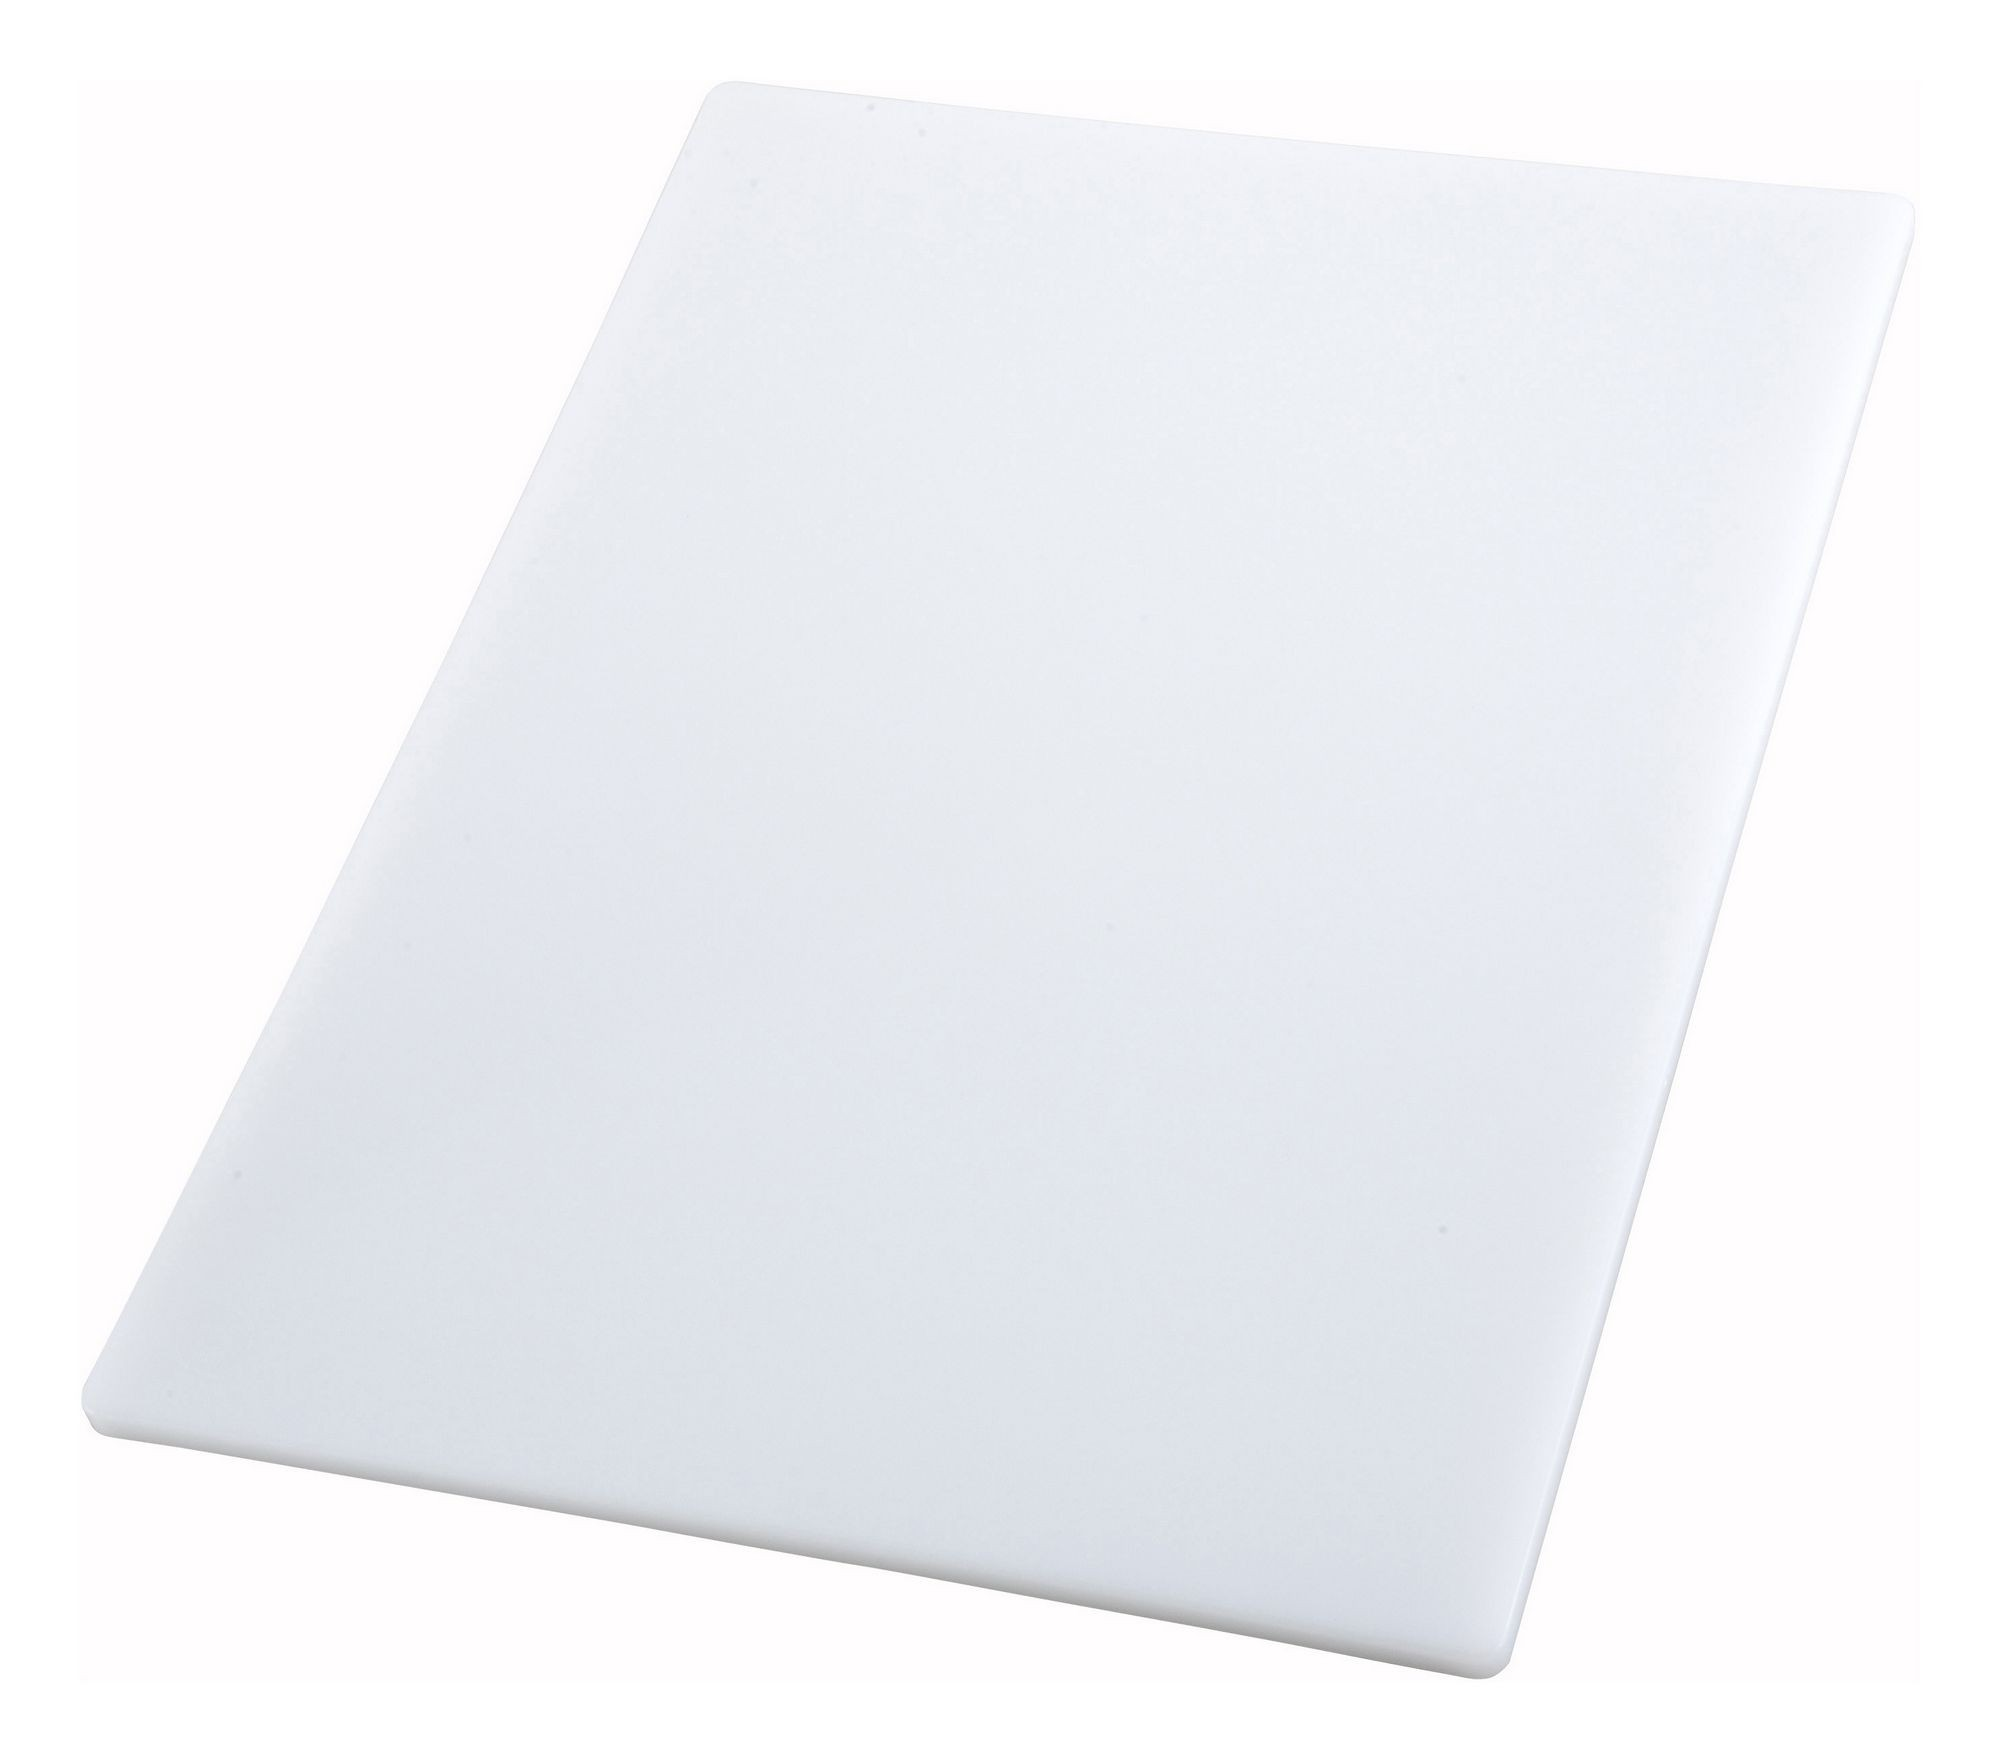 "Winco CBWT-1830 White Cutting Board 18"" x 30"" x 1/2"""